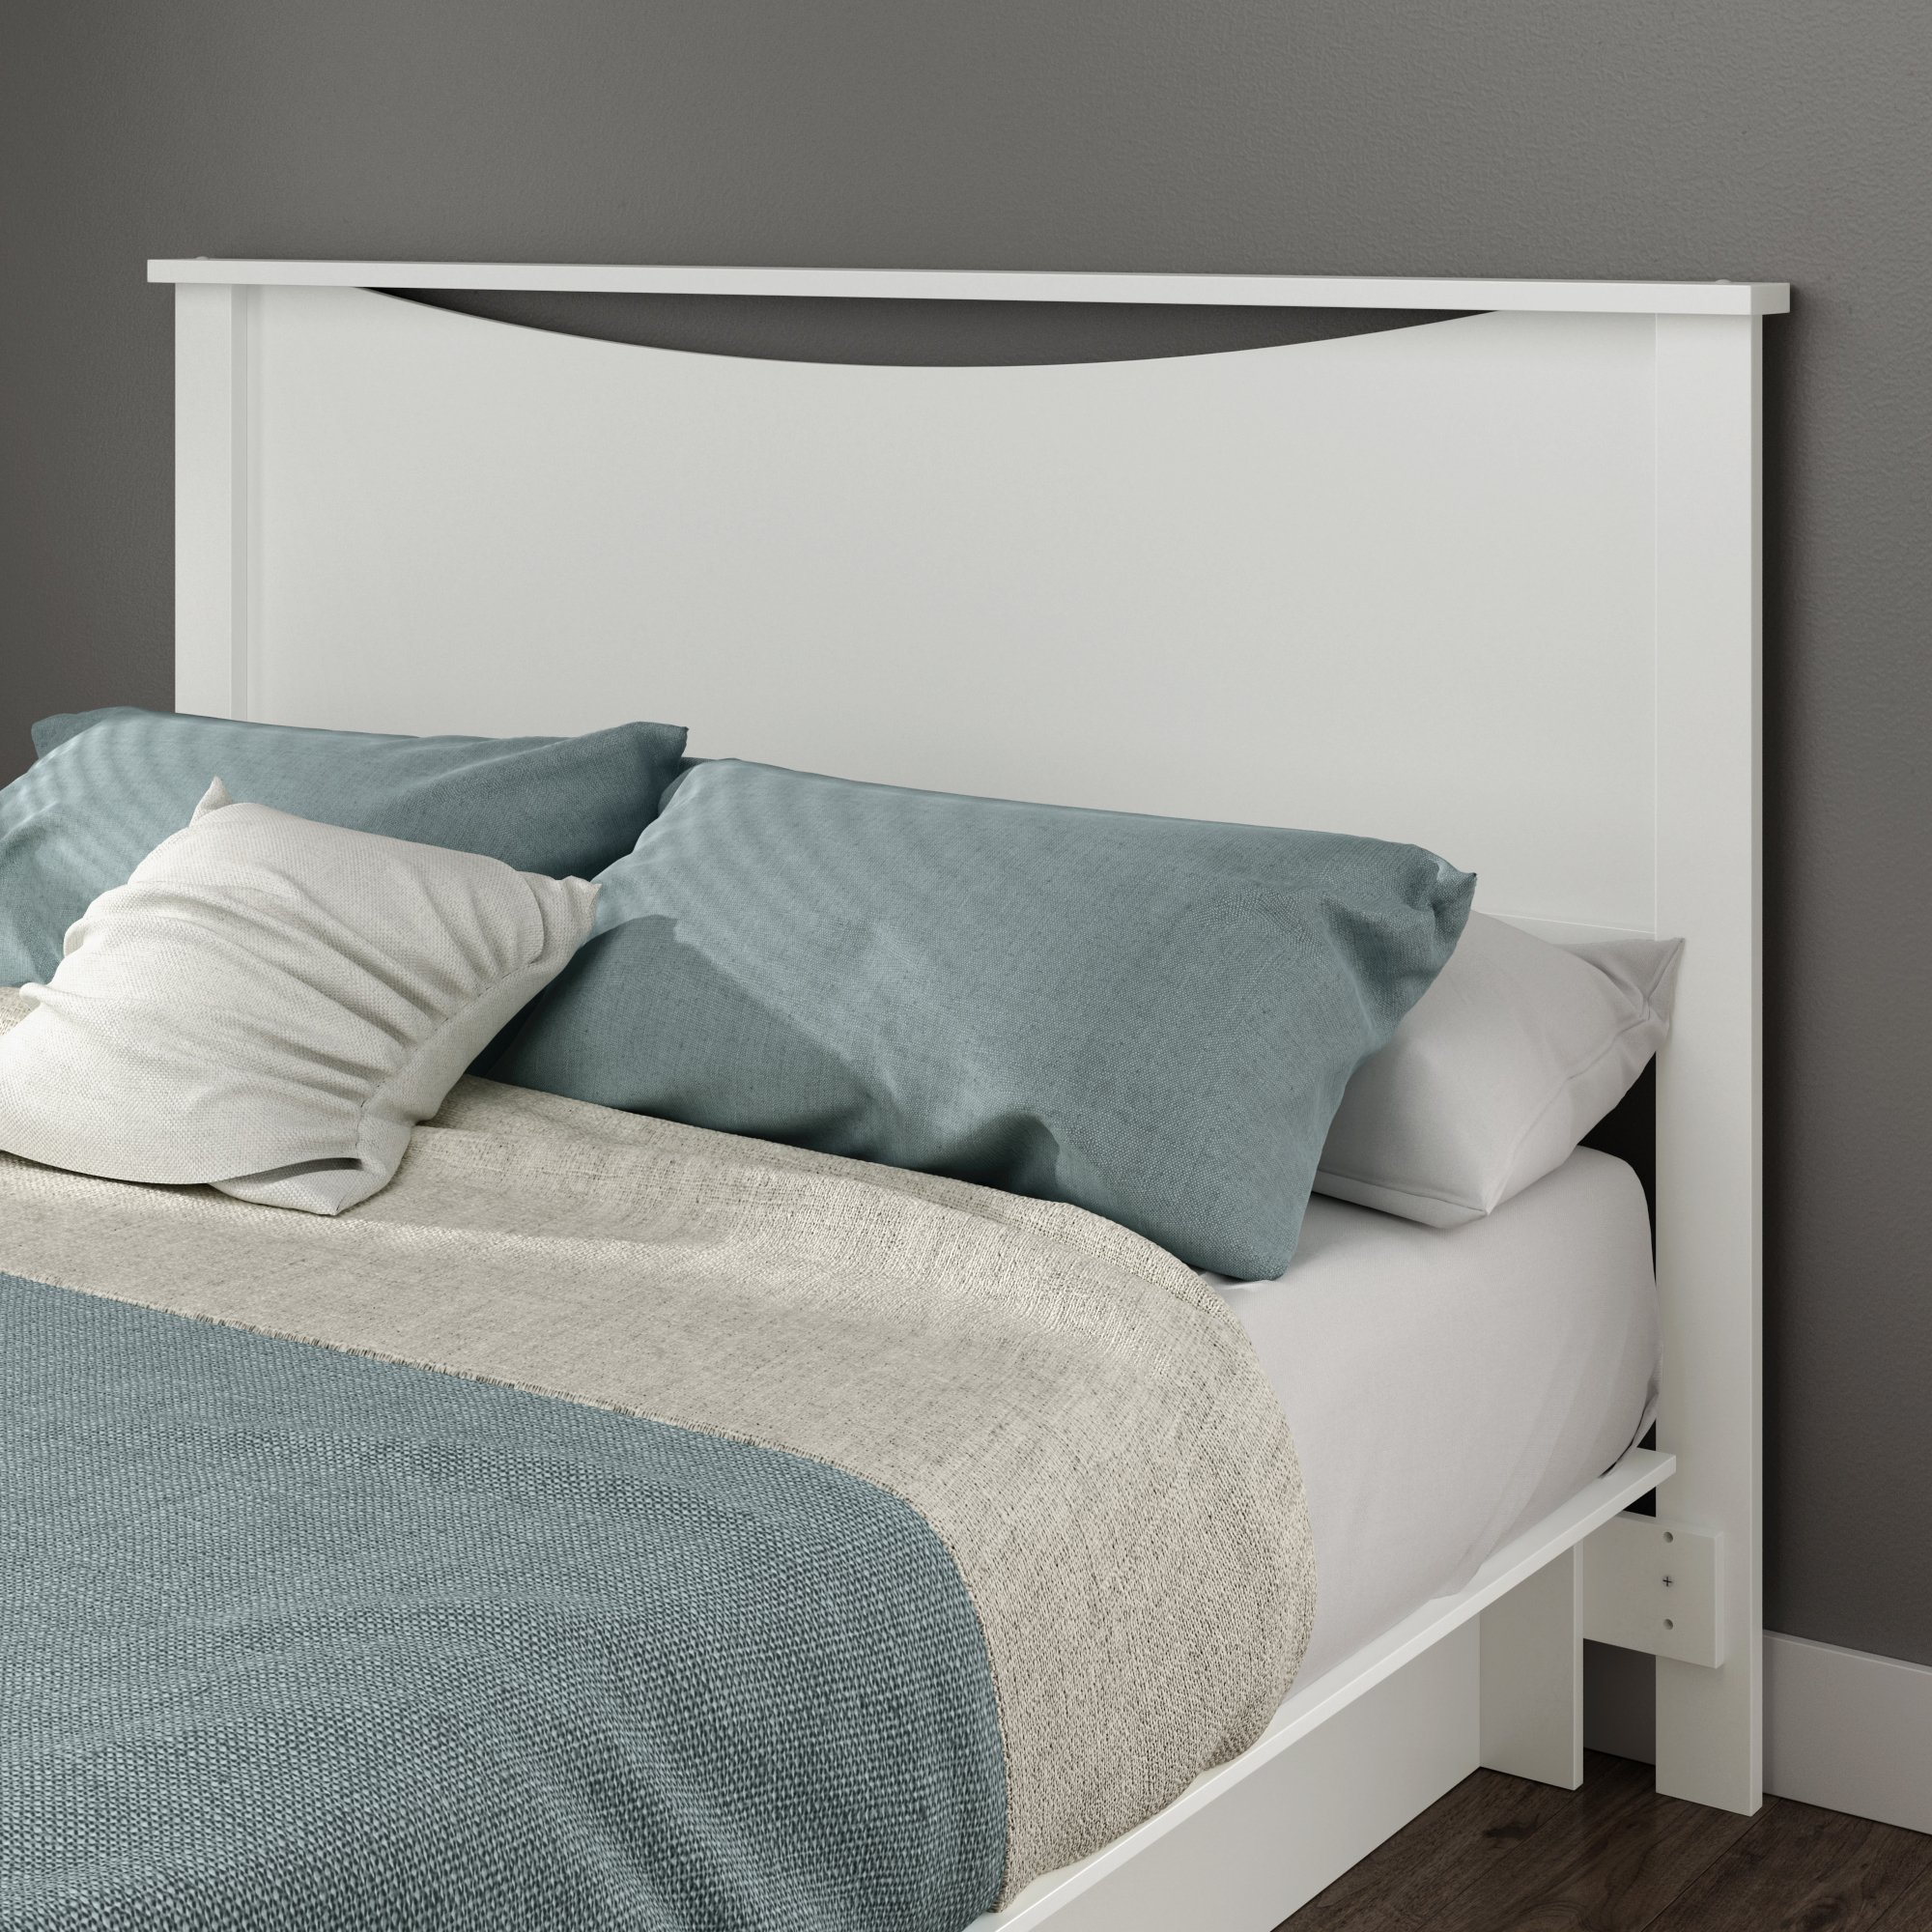 South Shore Gramercy Full/Queen Headboard (54/60''), Pure White